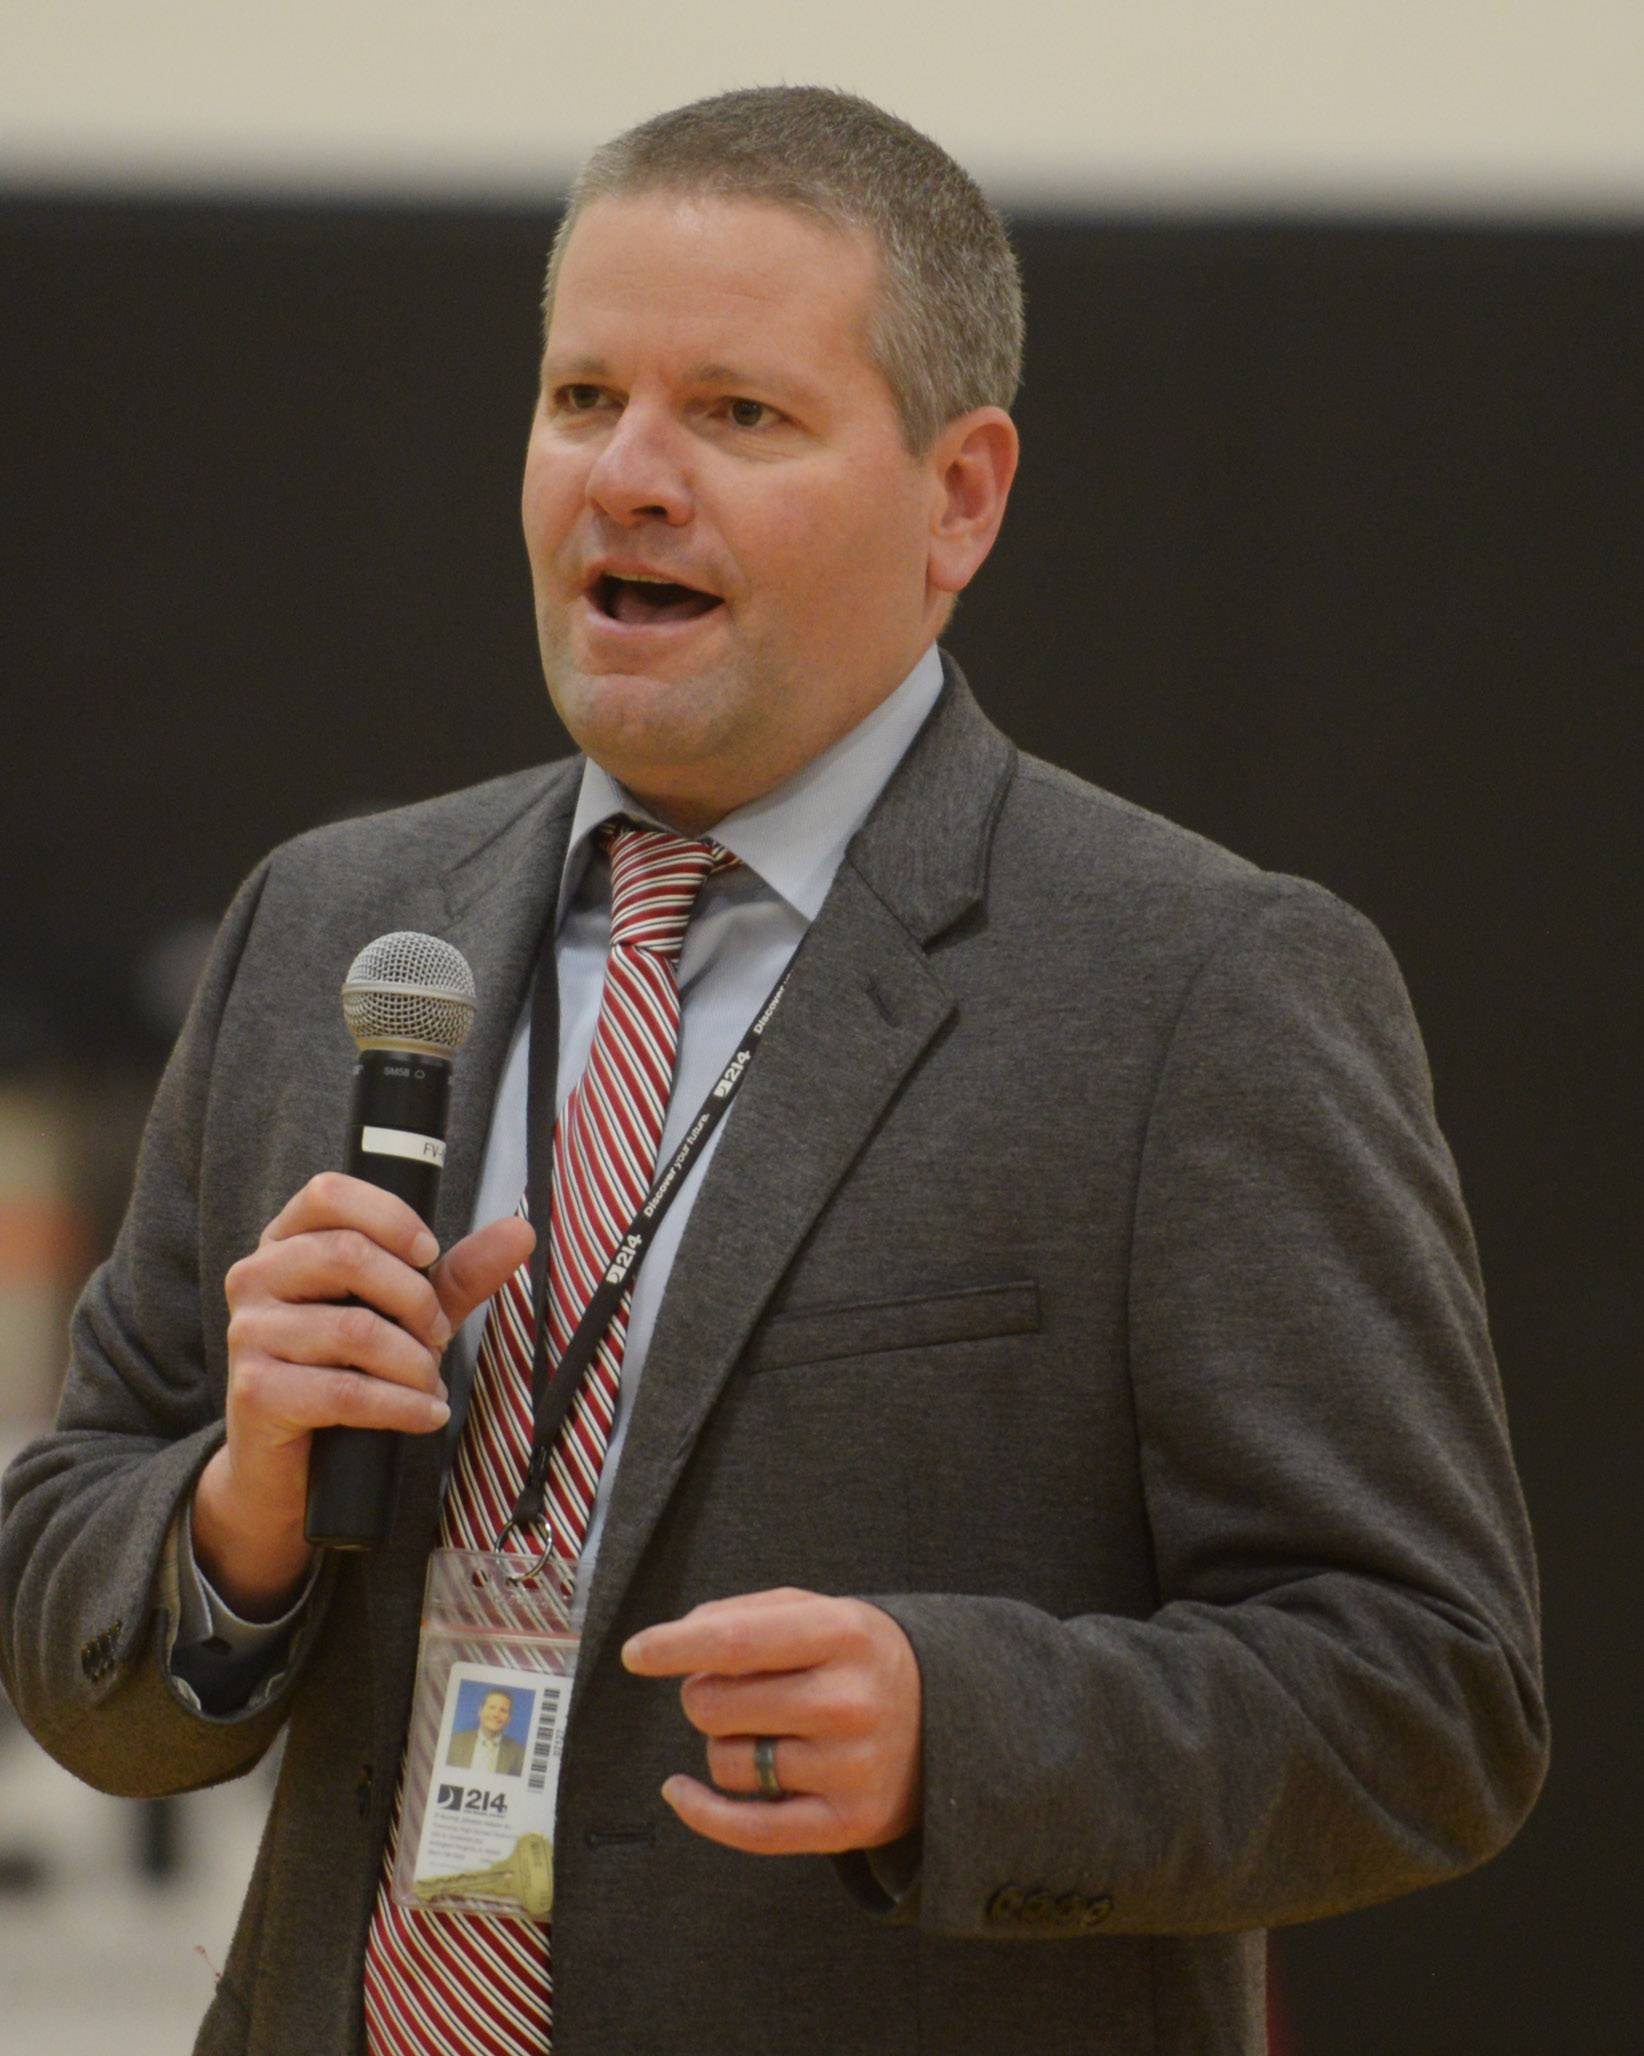 Northwest Suburban High School District 214 Superintendent David R. Schuler has been named 2018 National Superintendent of the Year.